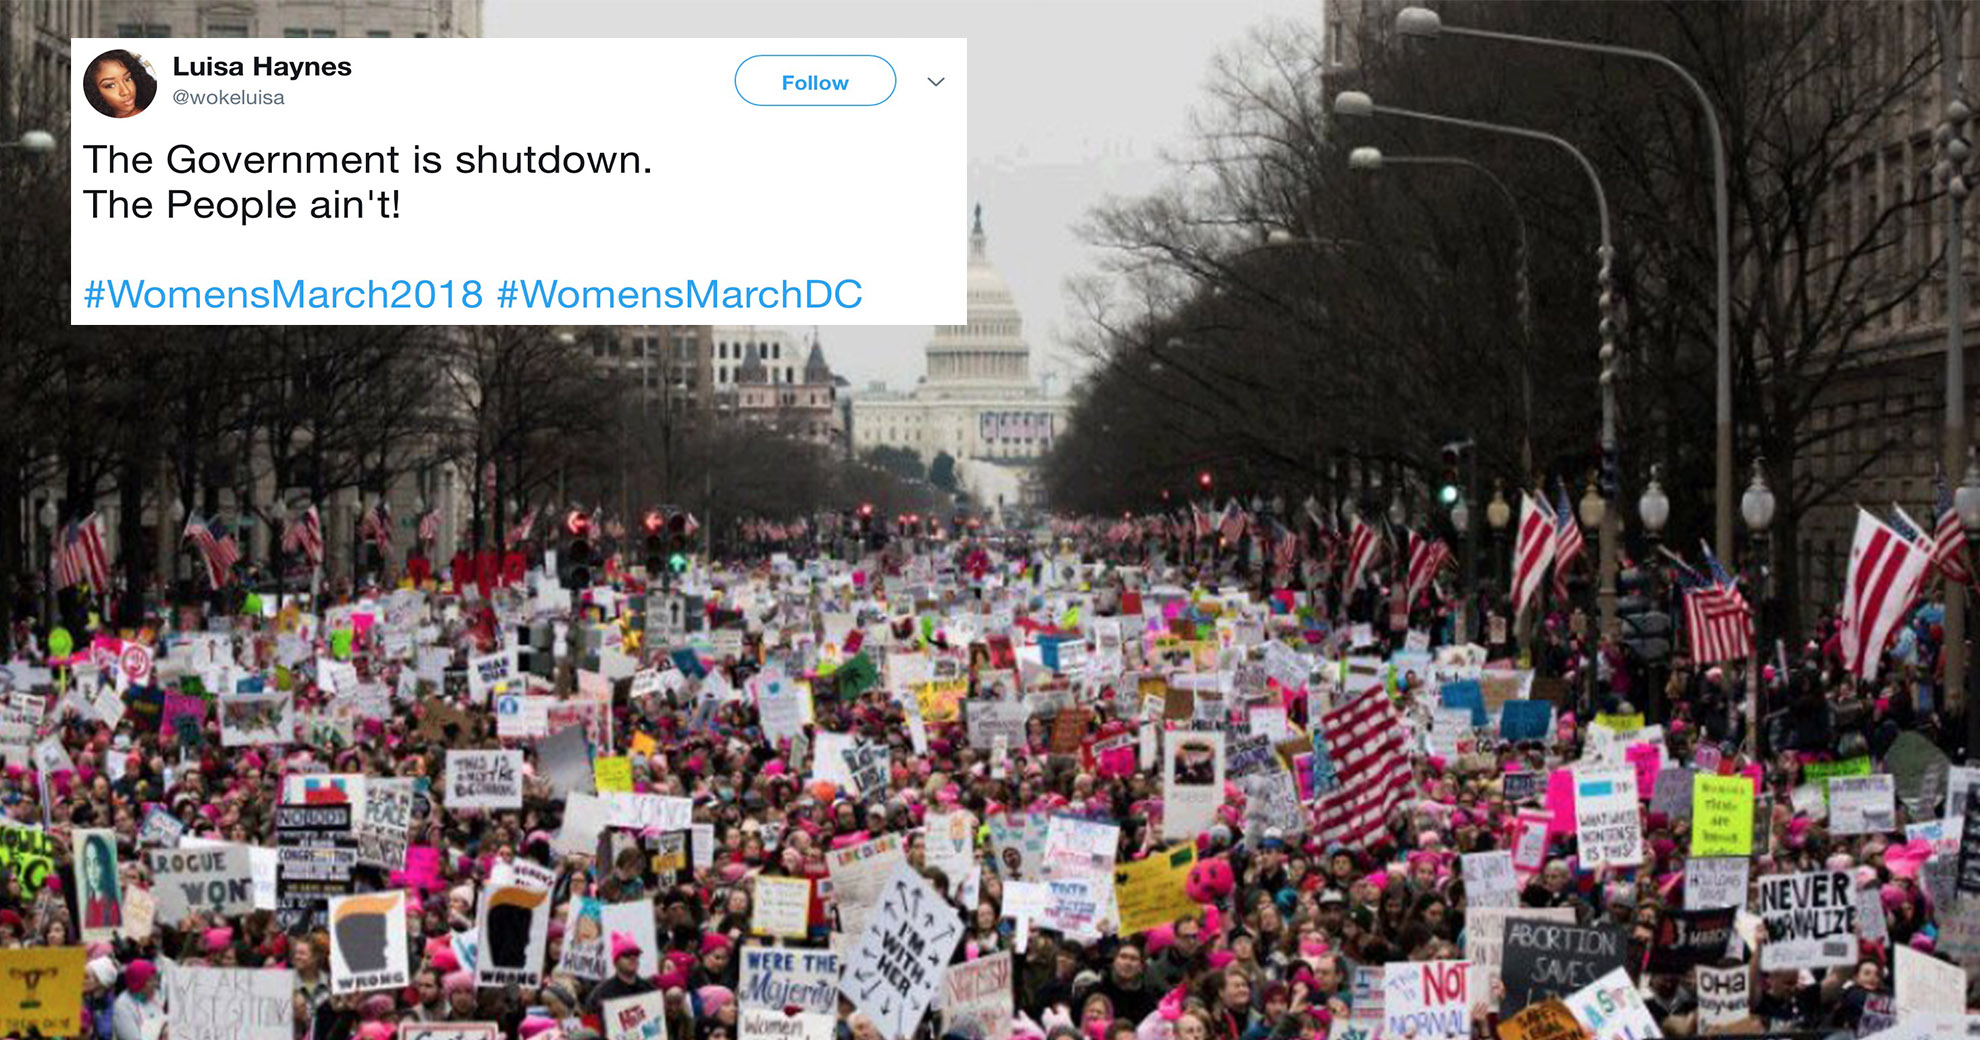 Revolutionary And Uplifiting Images Of Women's Marches Emerge Online